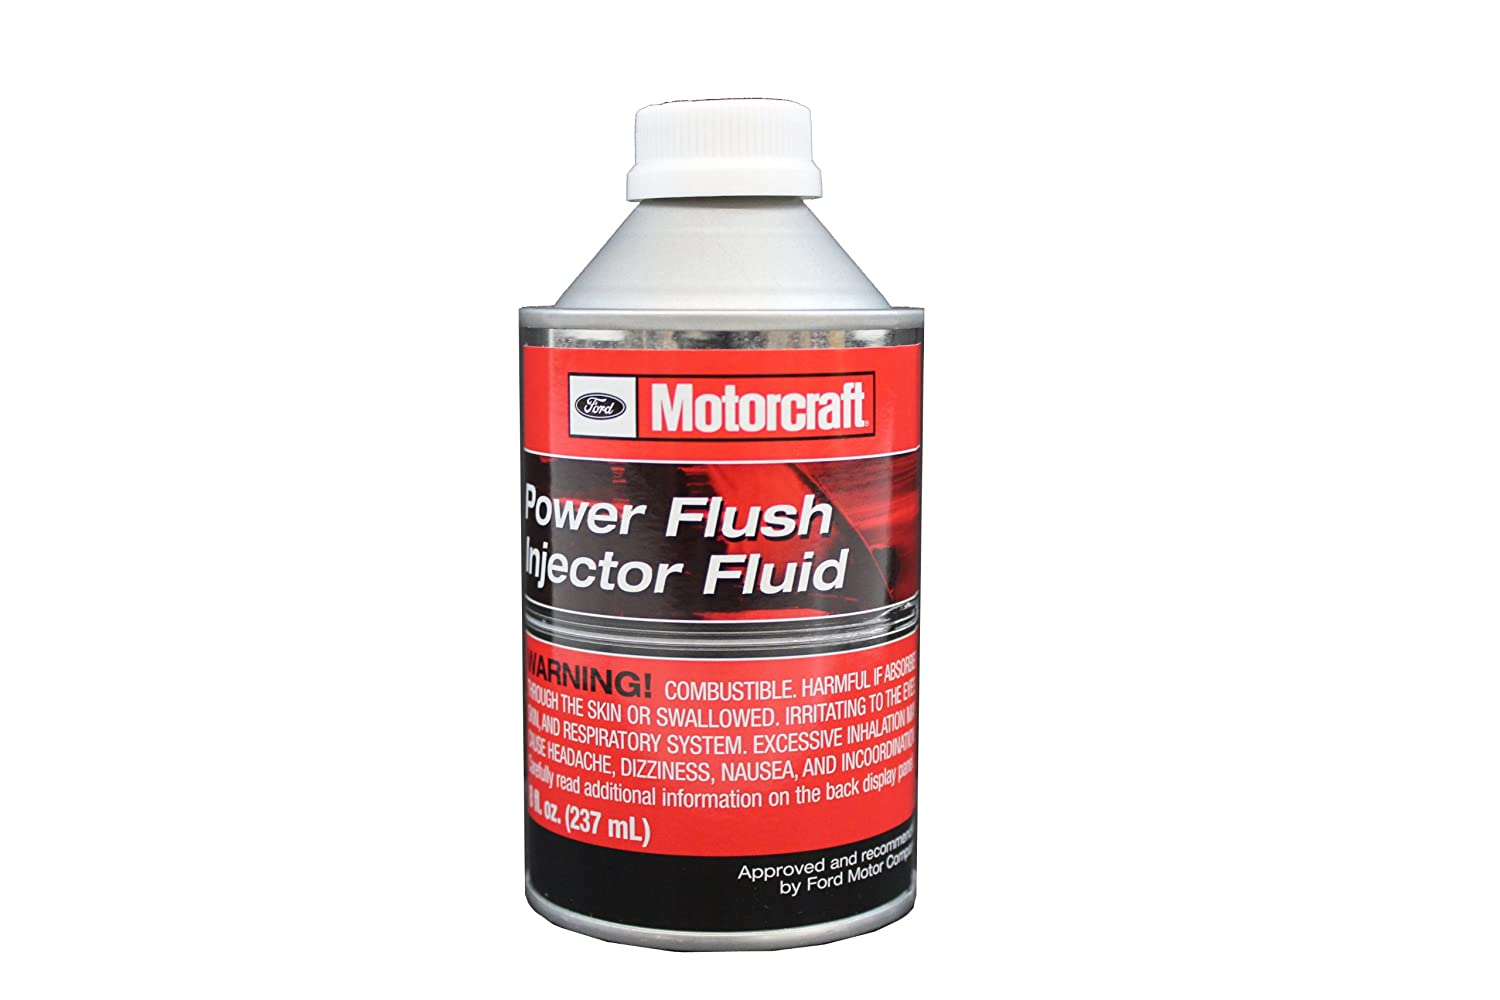 Flushing of injectors: additives, solvents or ultrasound